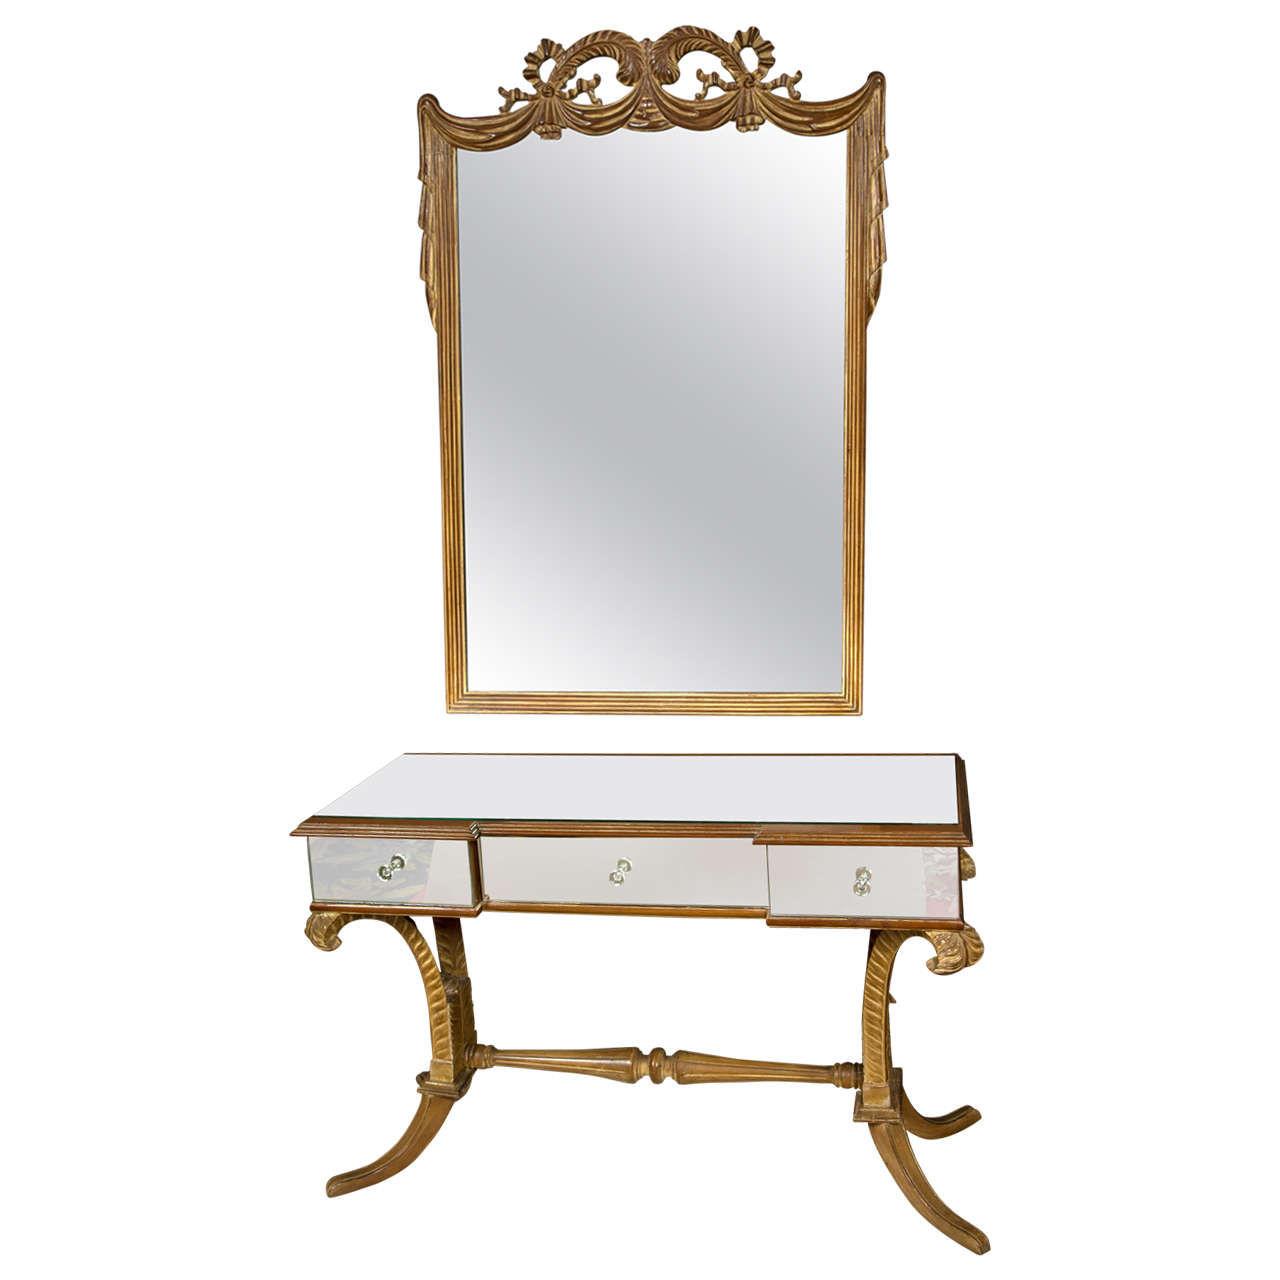 Grosfeld House Art Deco Fleur de Plume Matching Mirrored Vanity Mirror Bench